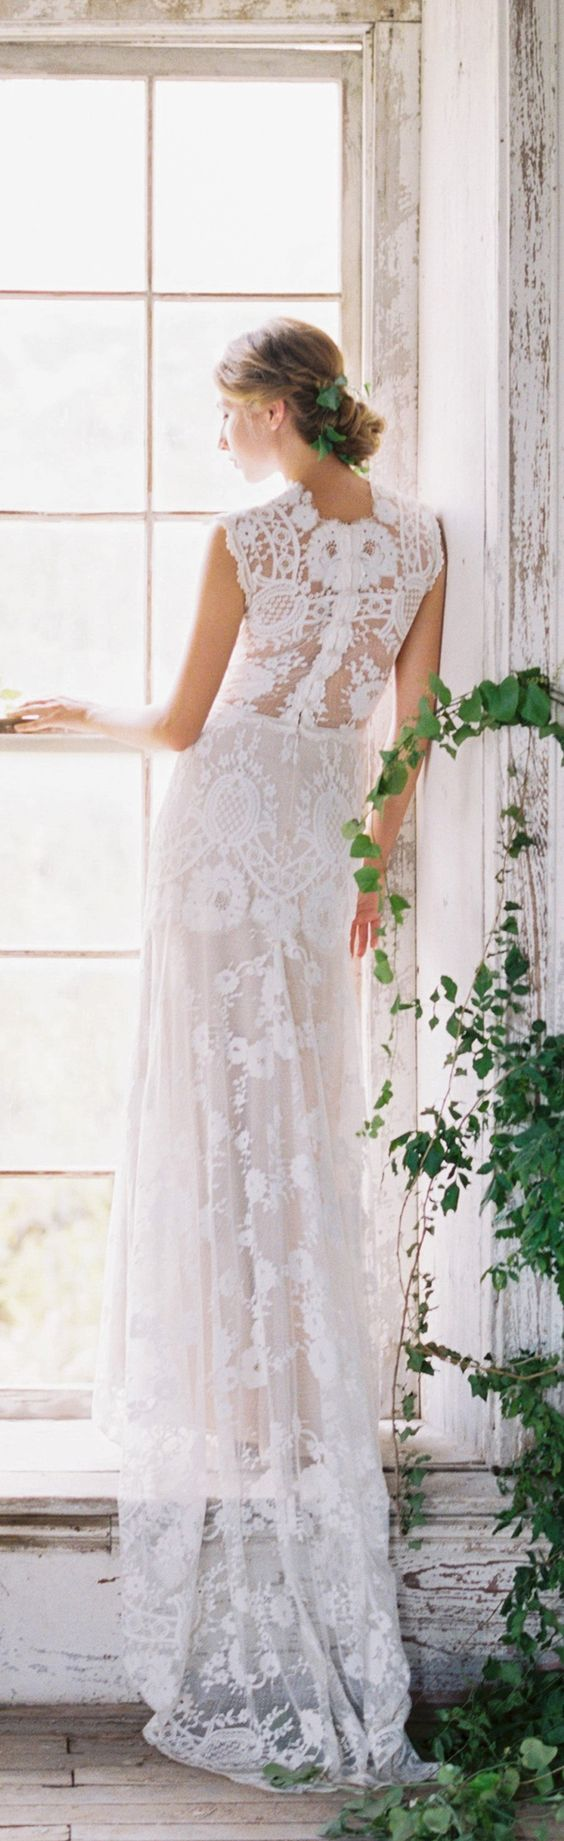 Cheyenne Lace Wedding Dress Romantique By Claire Pettibone Photo Sarah Kate Http